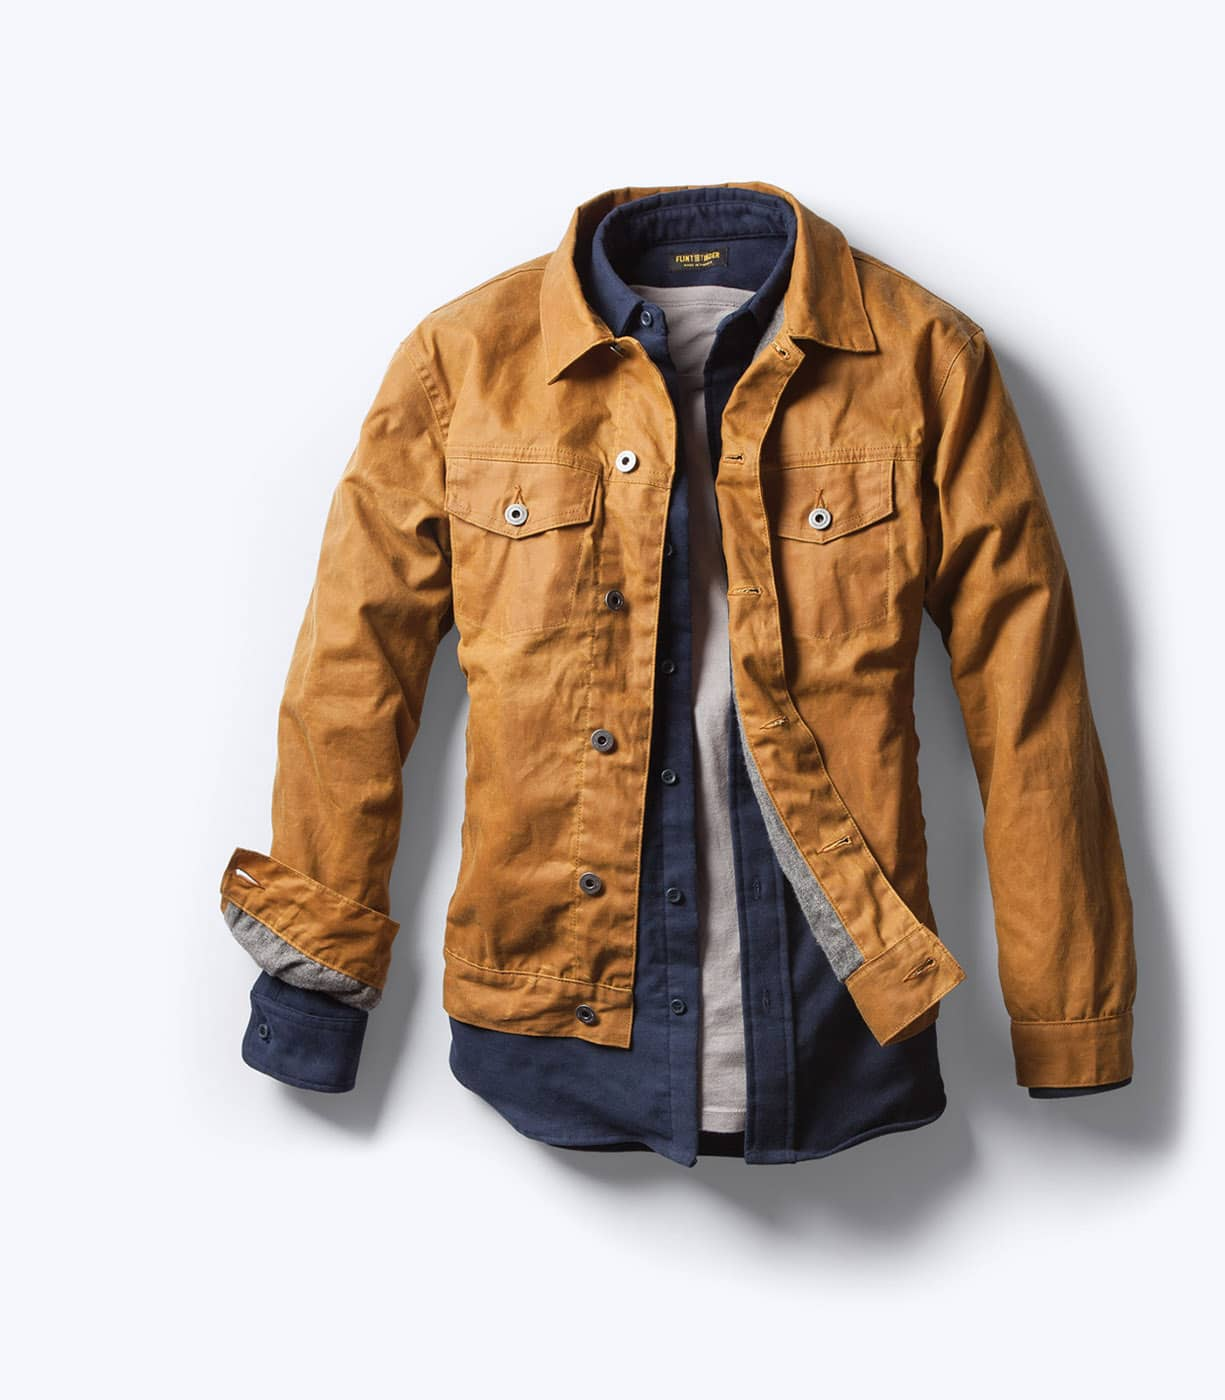 Gustin Trucker Jacket | Waxed Chore Coat | Waxed Trucker Jacket